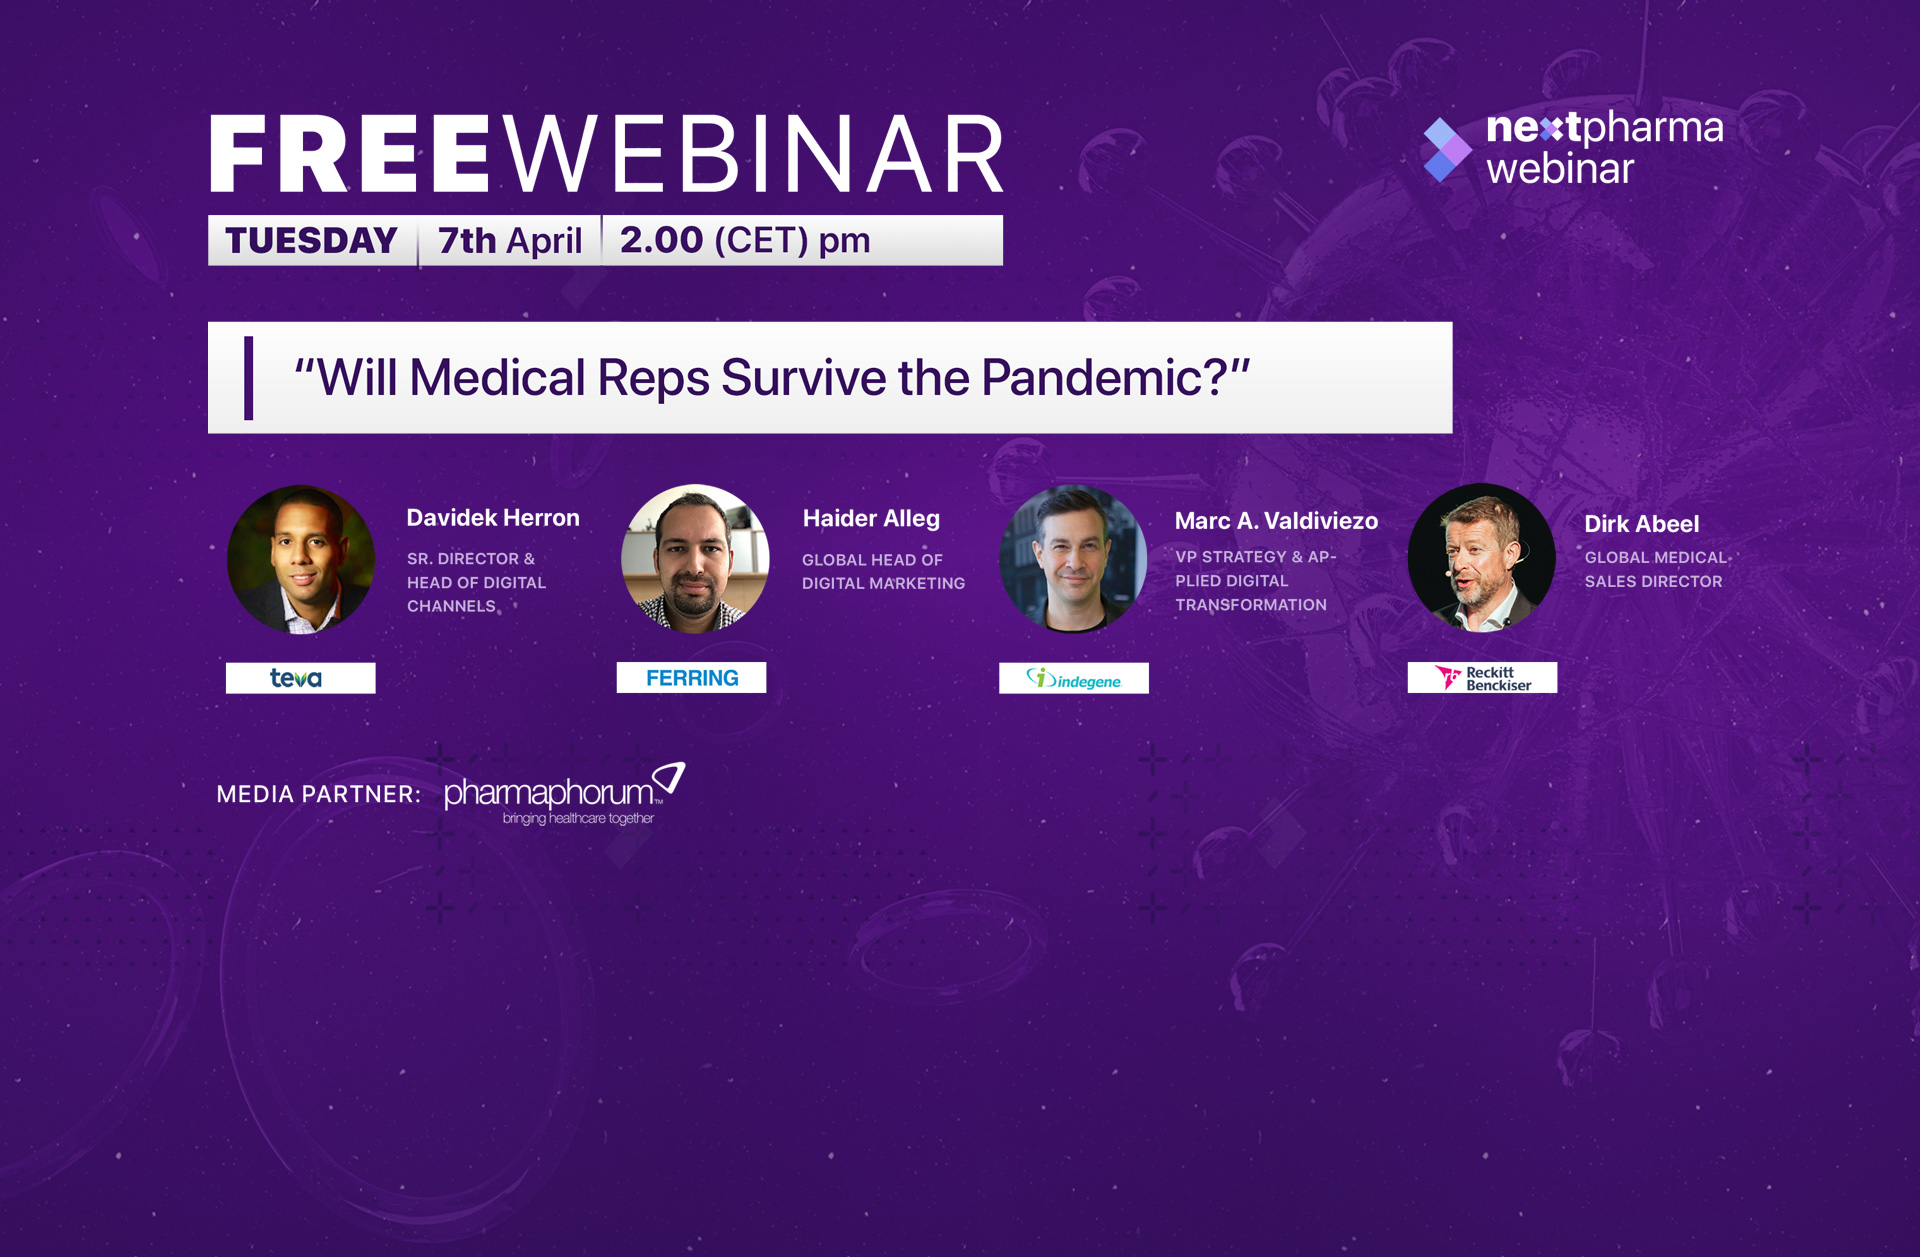 Will medical rep survive pandemic?